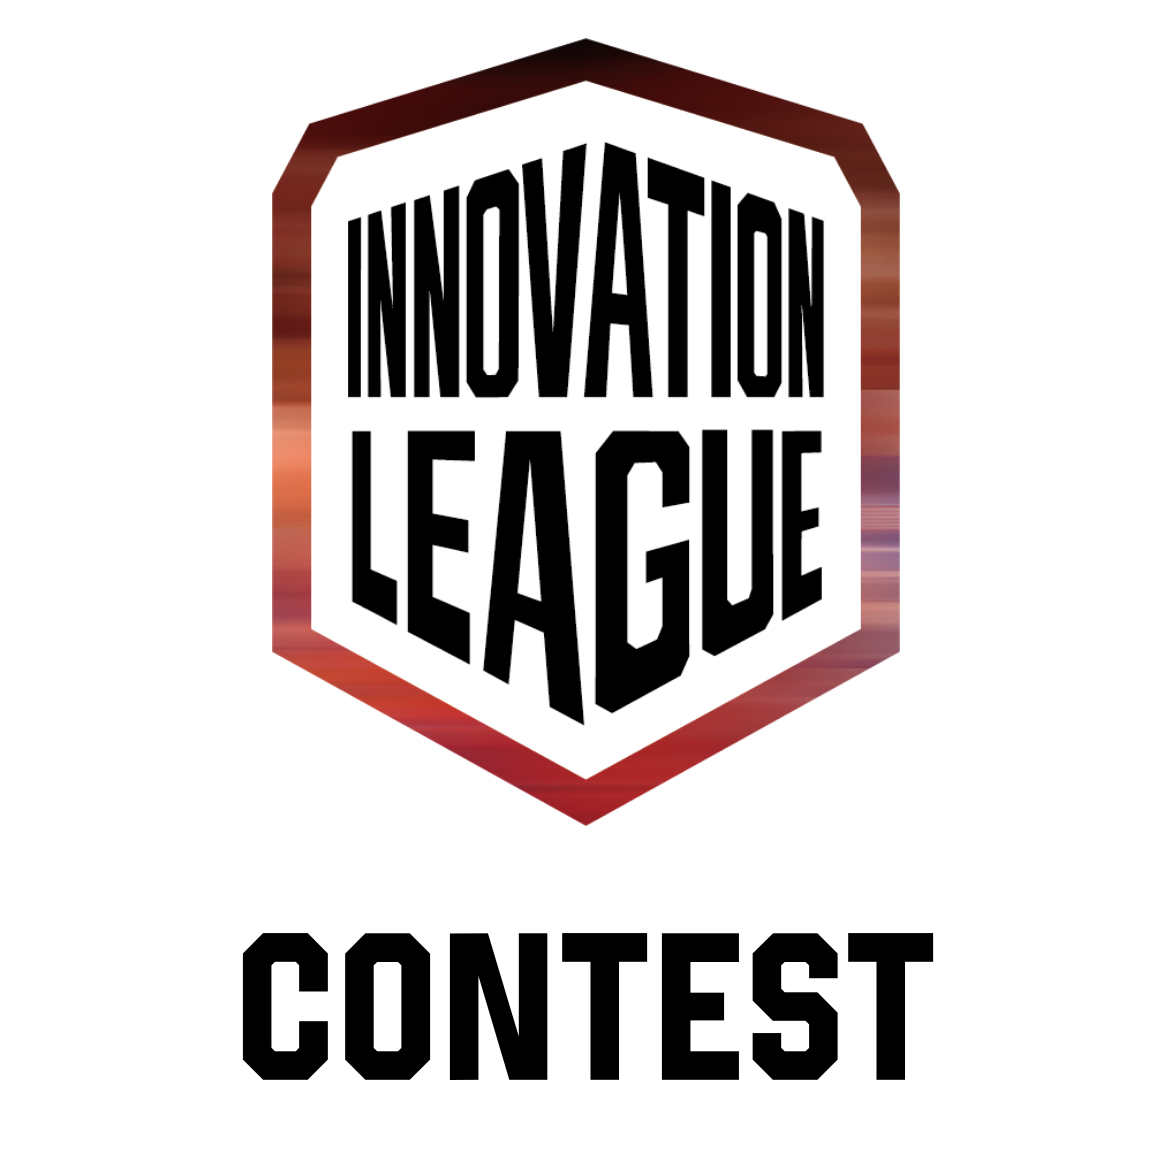 INNOVATION LEAGUE CONTEST